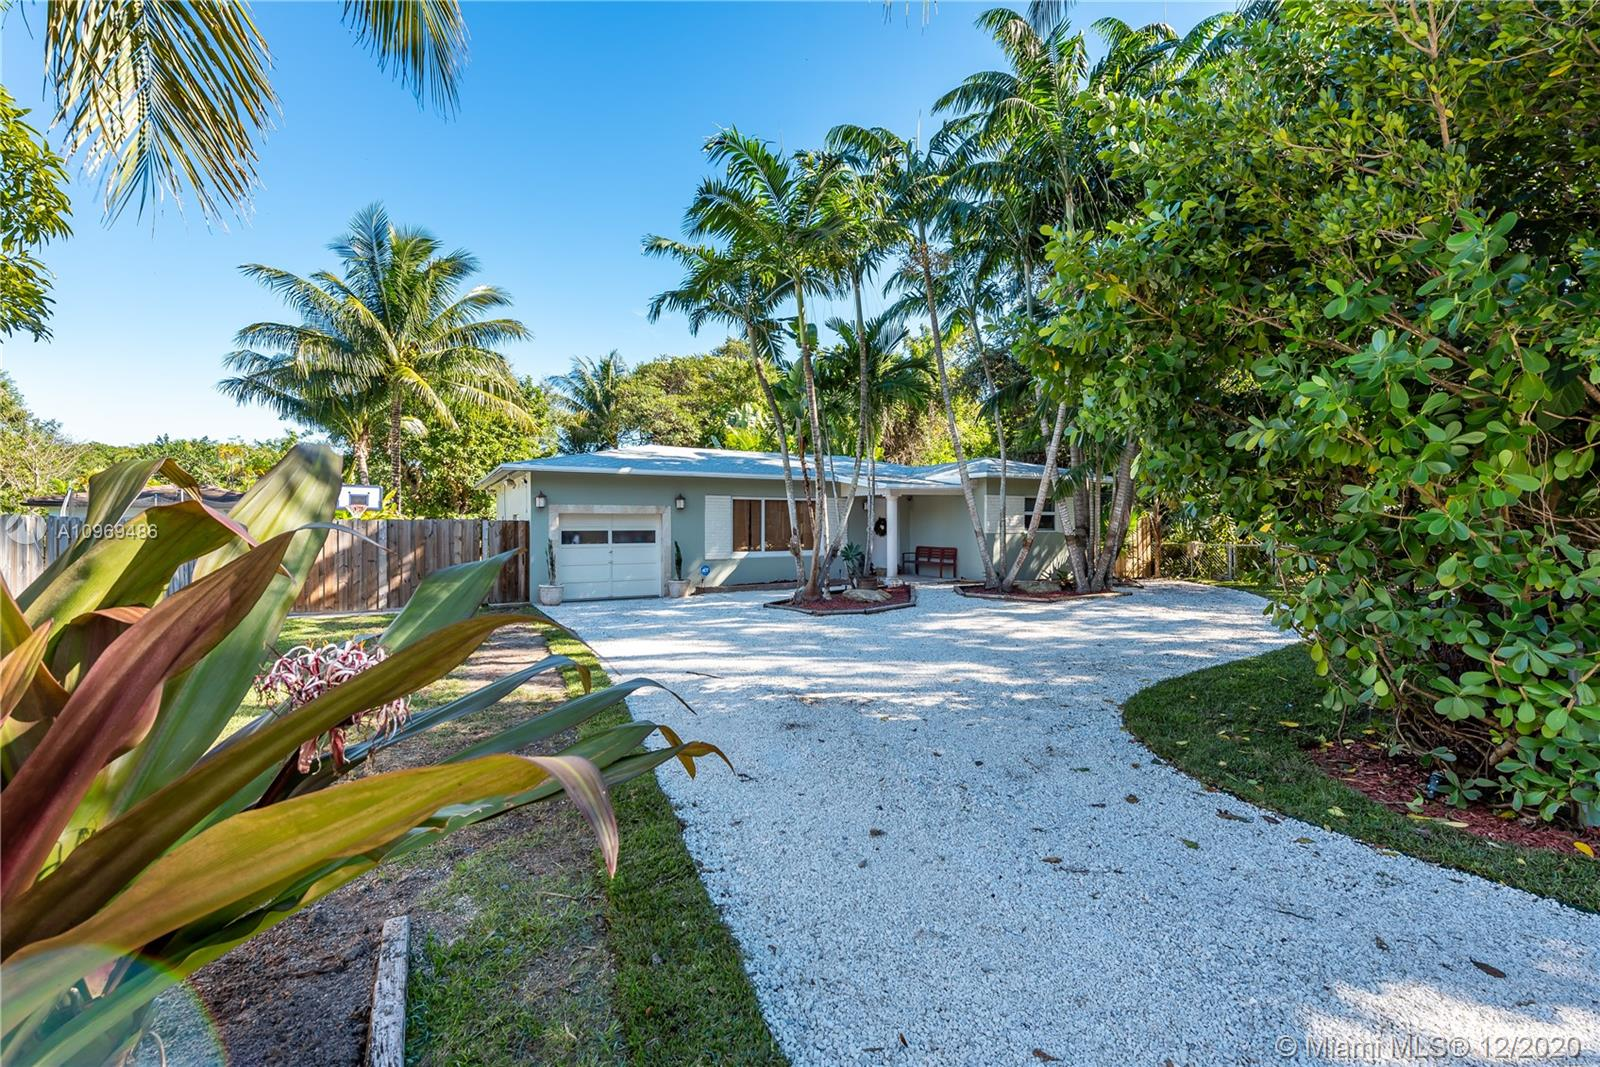 Are you looking for a prime location in South Miami to downsize from a larger home or simply a second home/investment in Sunny South Florida? This updated cozy 2 bed 1 bath home boasts a great lot size of 13,500 square ft. This home features an updated kitchen, updated bathroom with rainfall shower and jets, and hardwood floor in main living areas. Additional features include the roof being replaced in 2016, all but 3 windows are impact, and a large terrace in the backyard to entertain. There is lots space for a pool, multiple vehicles, an RV, and a boat. This property is conveniently located minutes away from from the University of Miami, Coral Gables, and Coconut Grove. As a bonus there is lots great shopping, plenty of dining options, and easy access to the Metrorail and US-1.